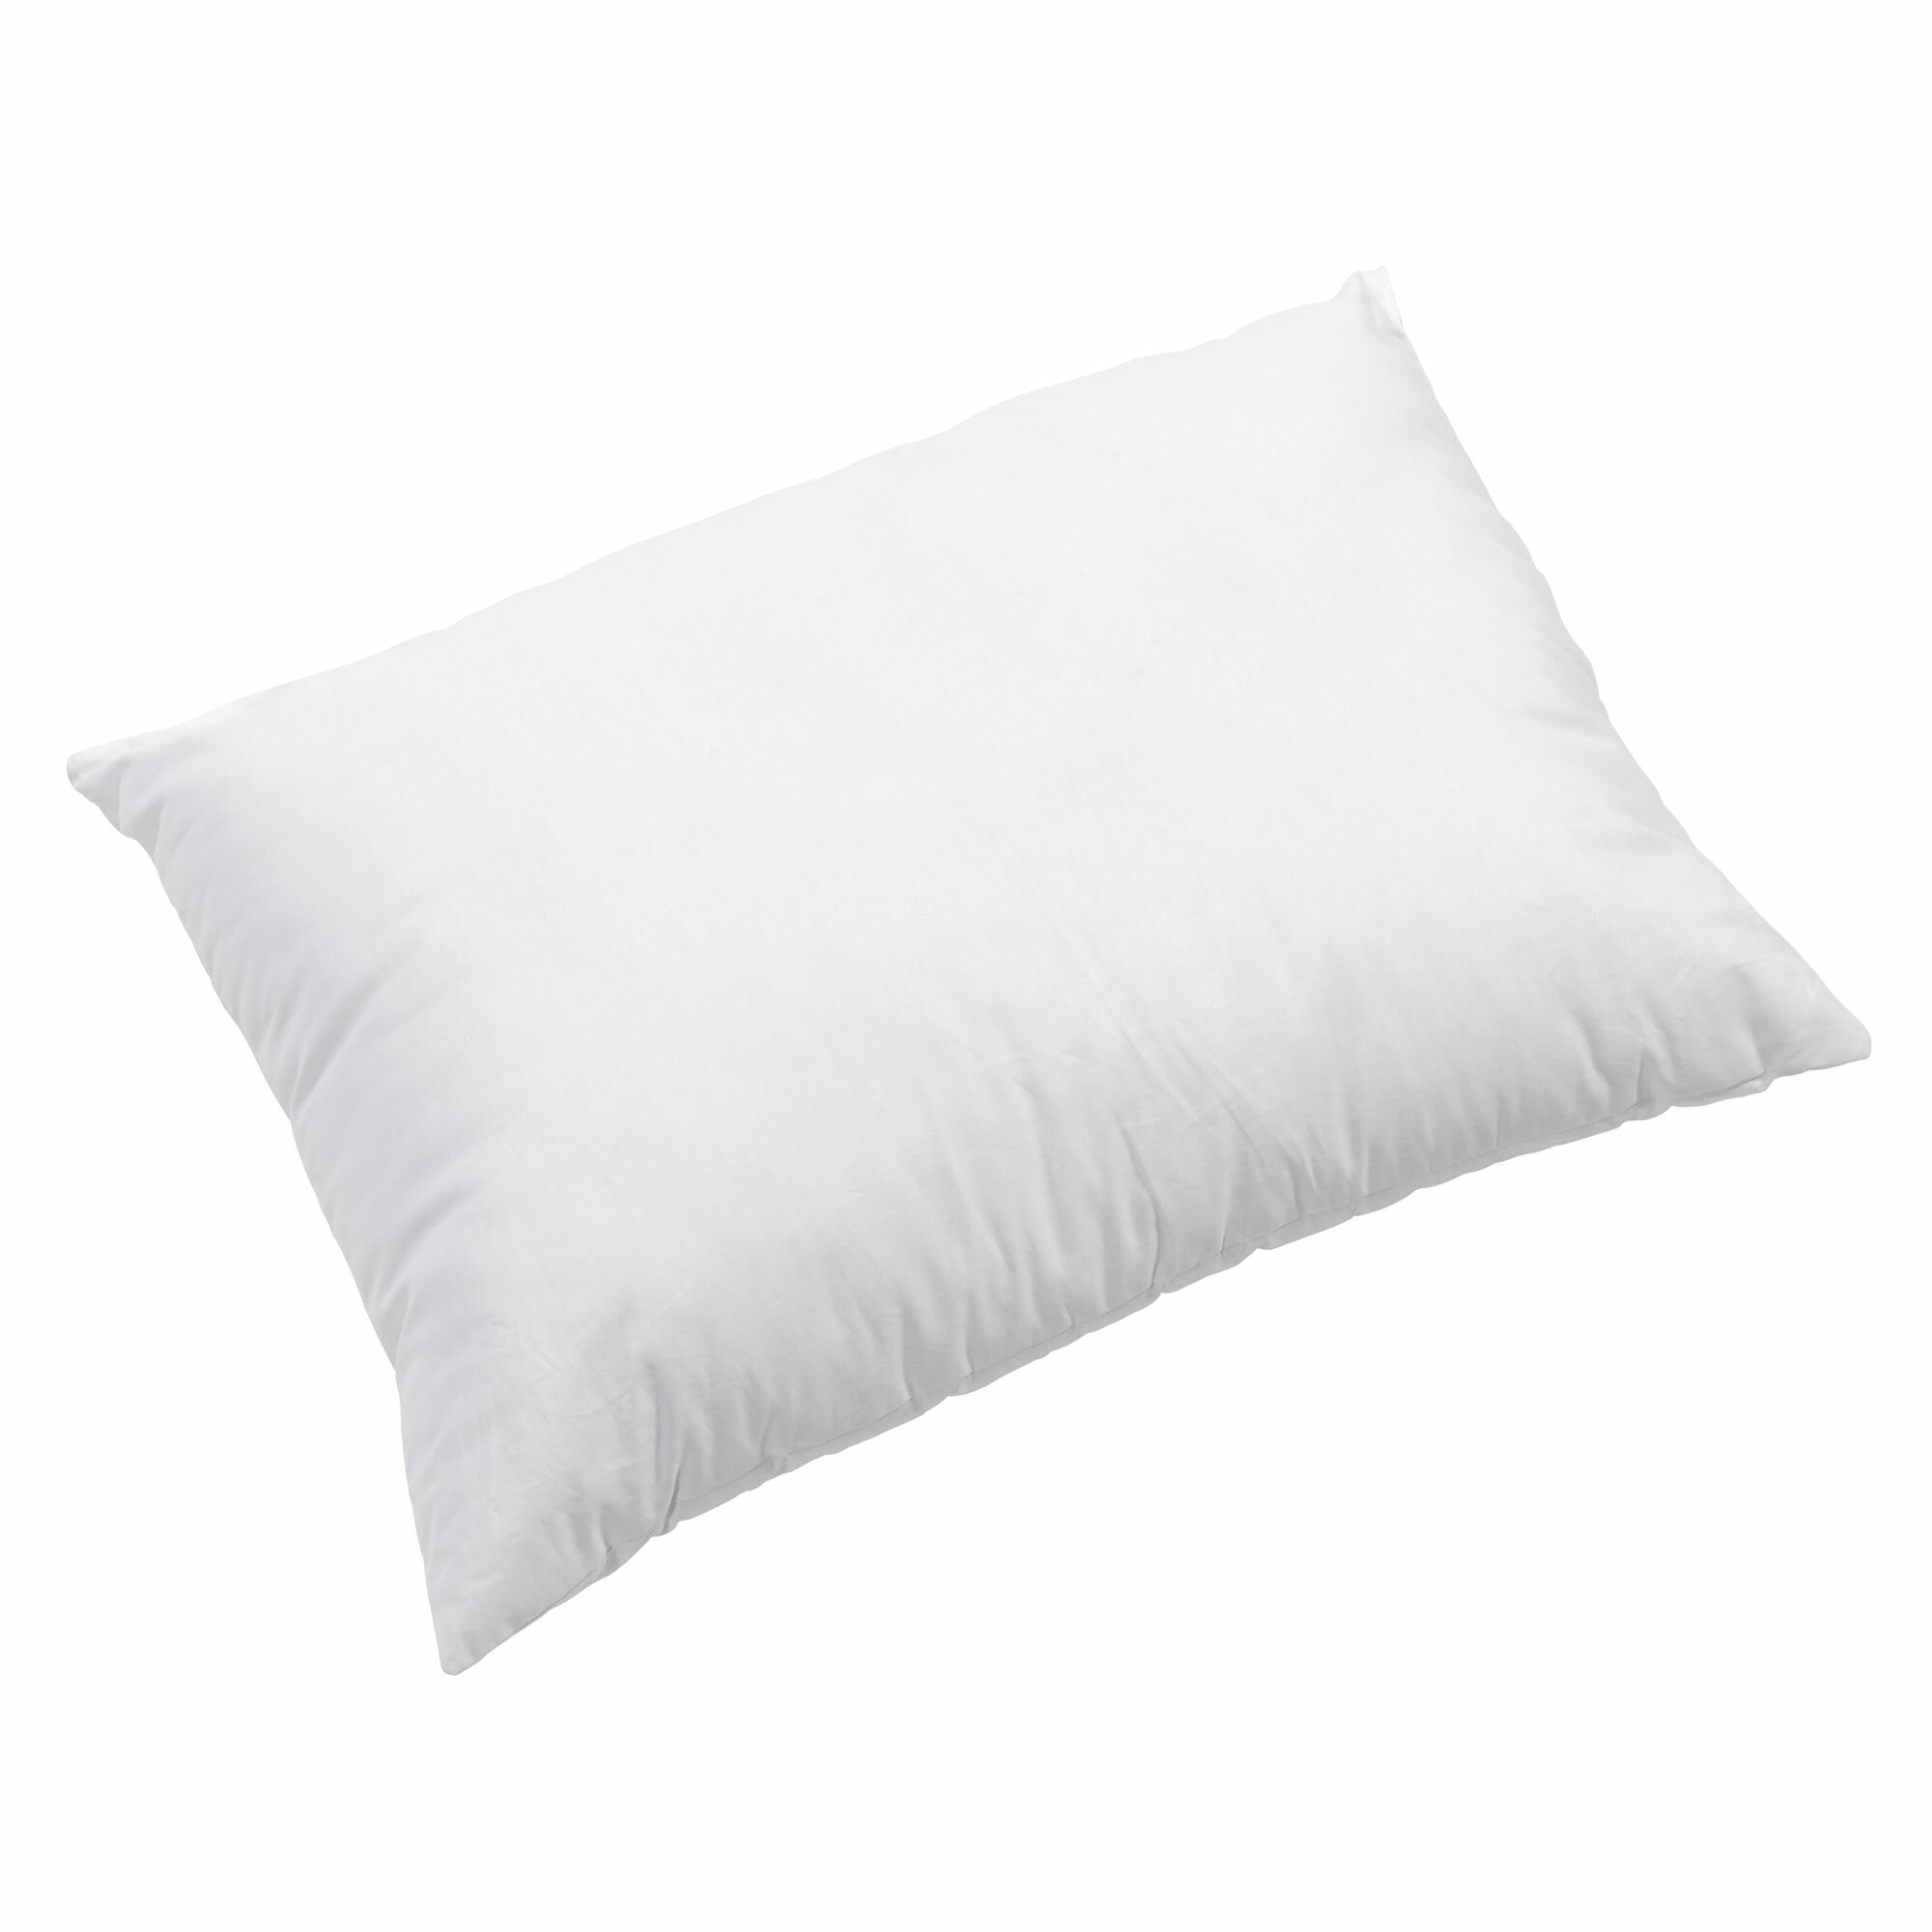 Lavish home ultra soft down alternative pillow reviews for Best soft bed pillows